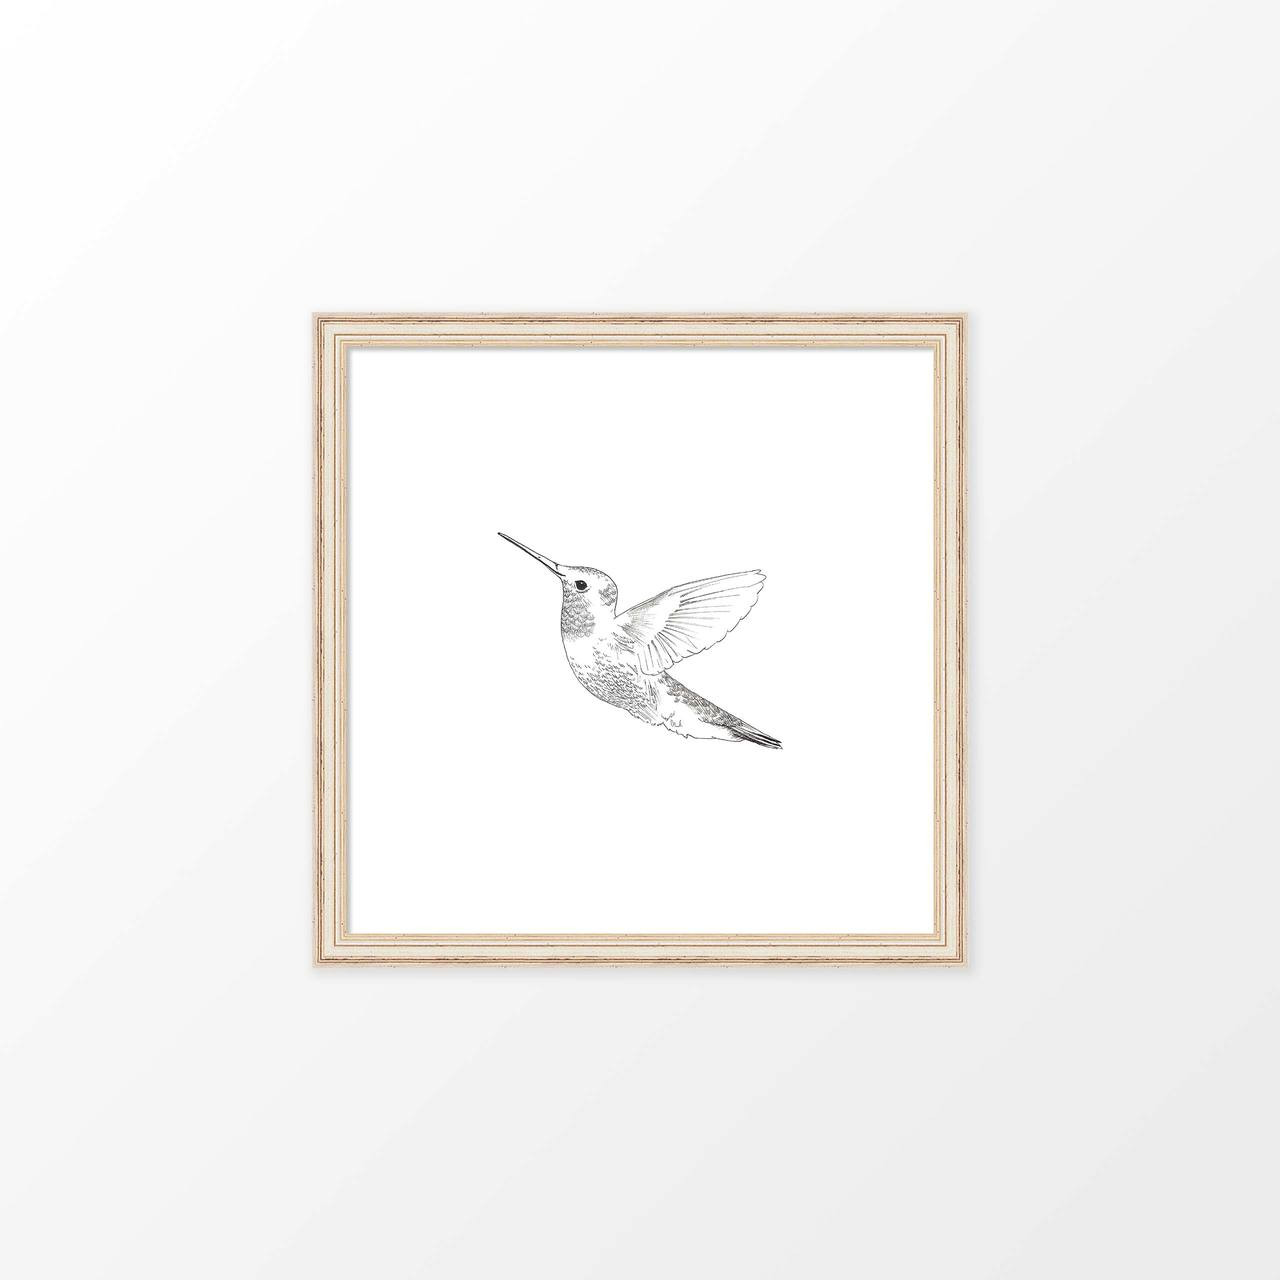 'Hummingbird' Hand-Drawn Art Print from The Printed Home